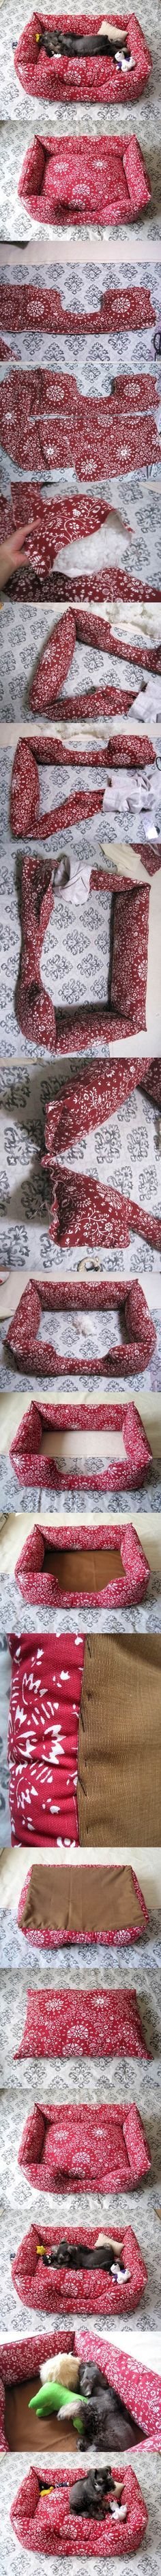 DIY Sew Couch for Pets   LovePetsDIY.com